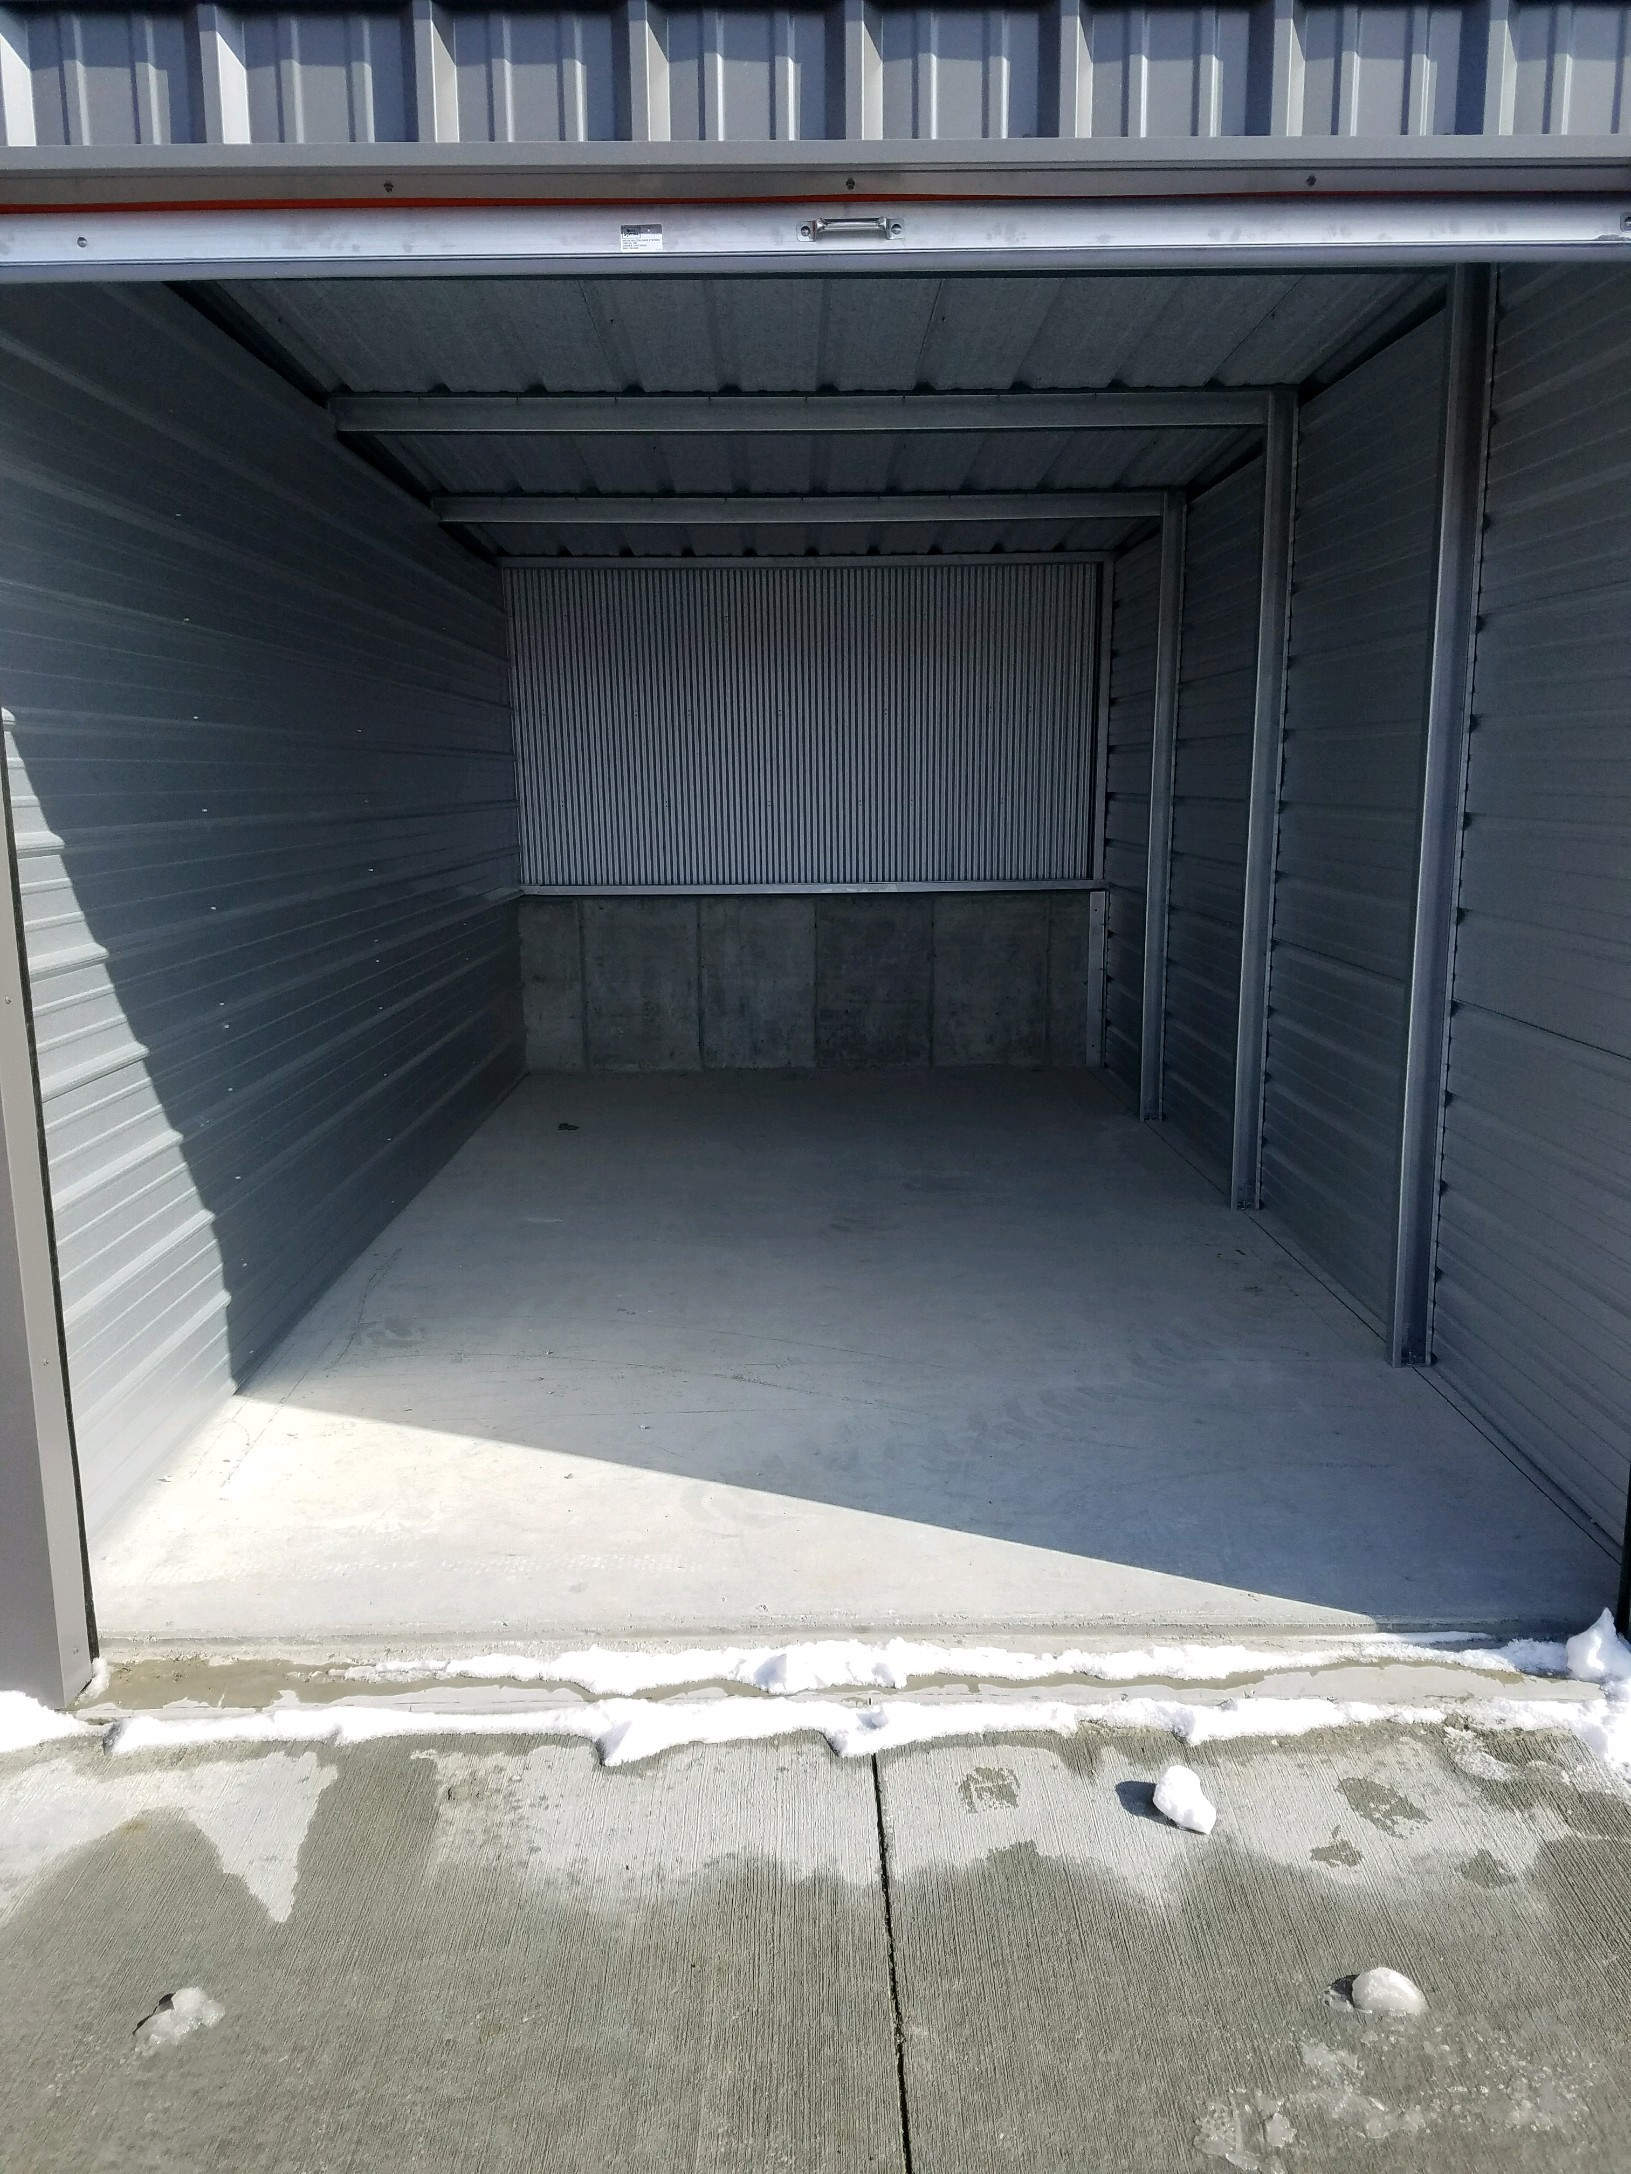 10' x 20' Self Storage Unit in Solon, Iowa at V' s Self Storage